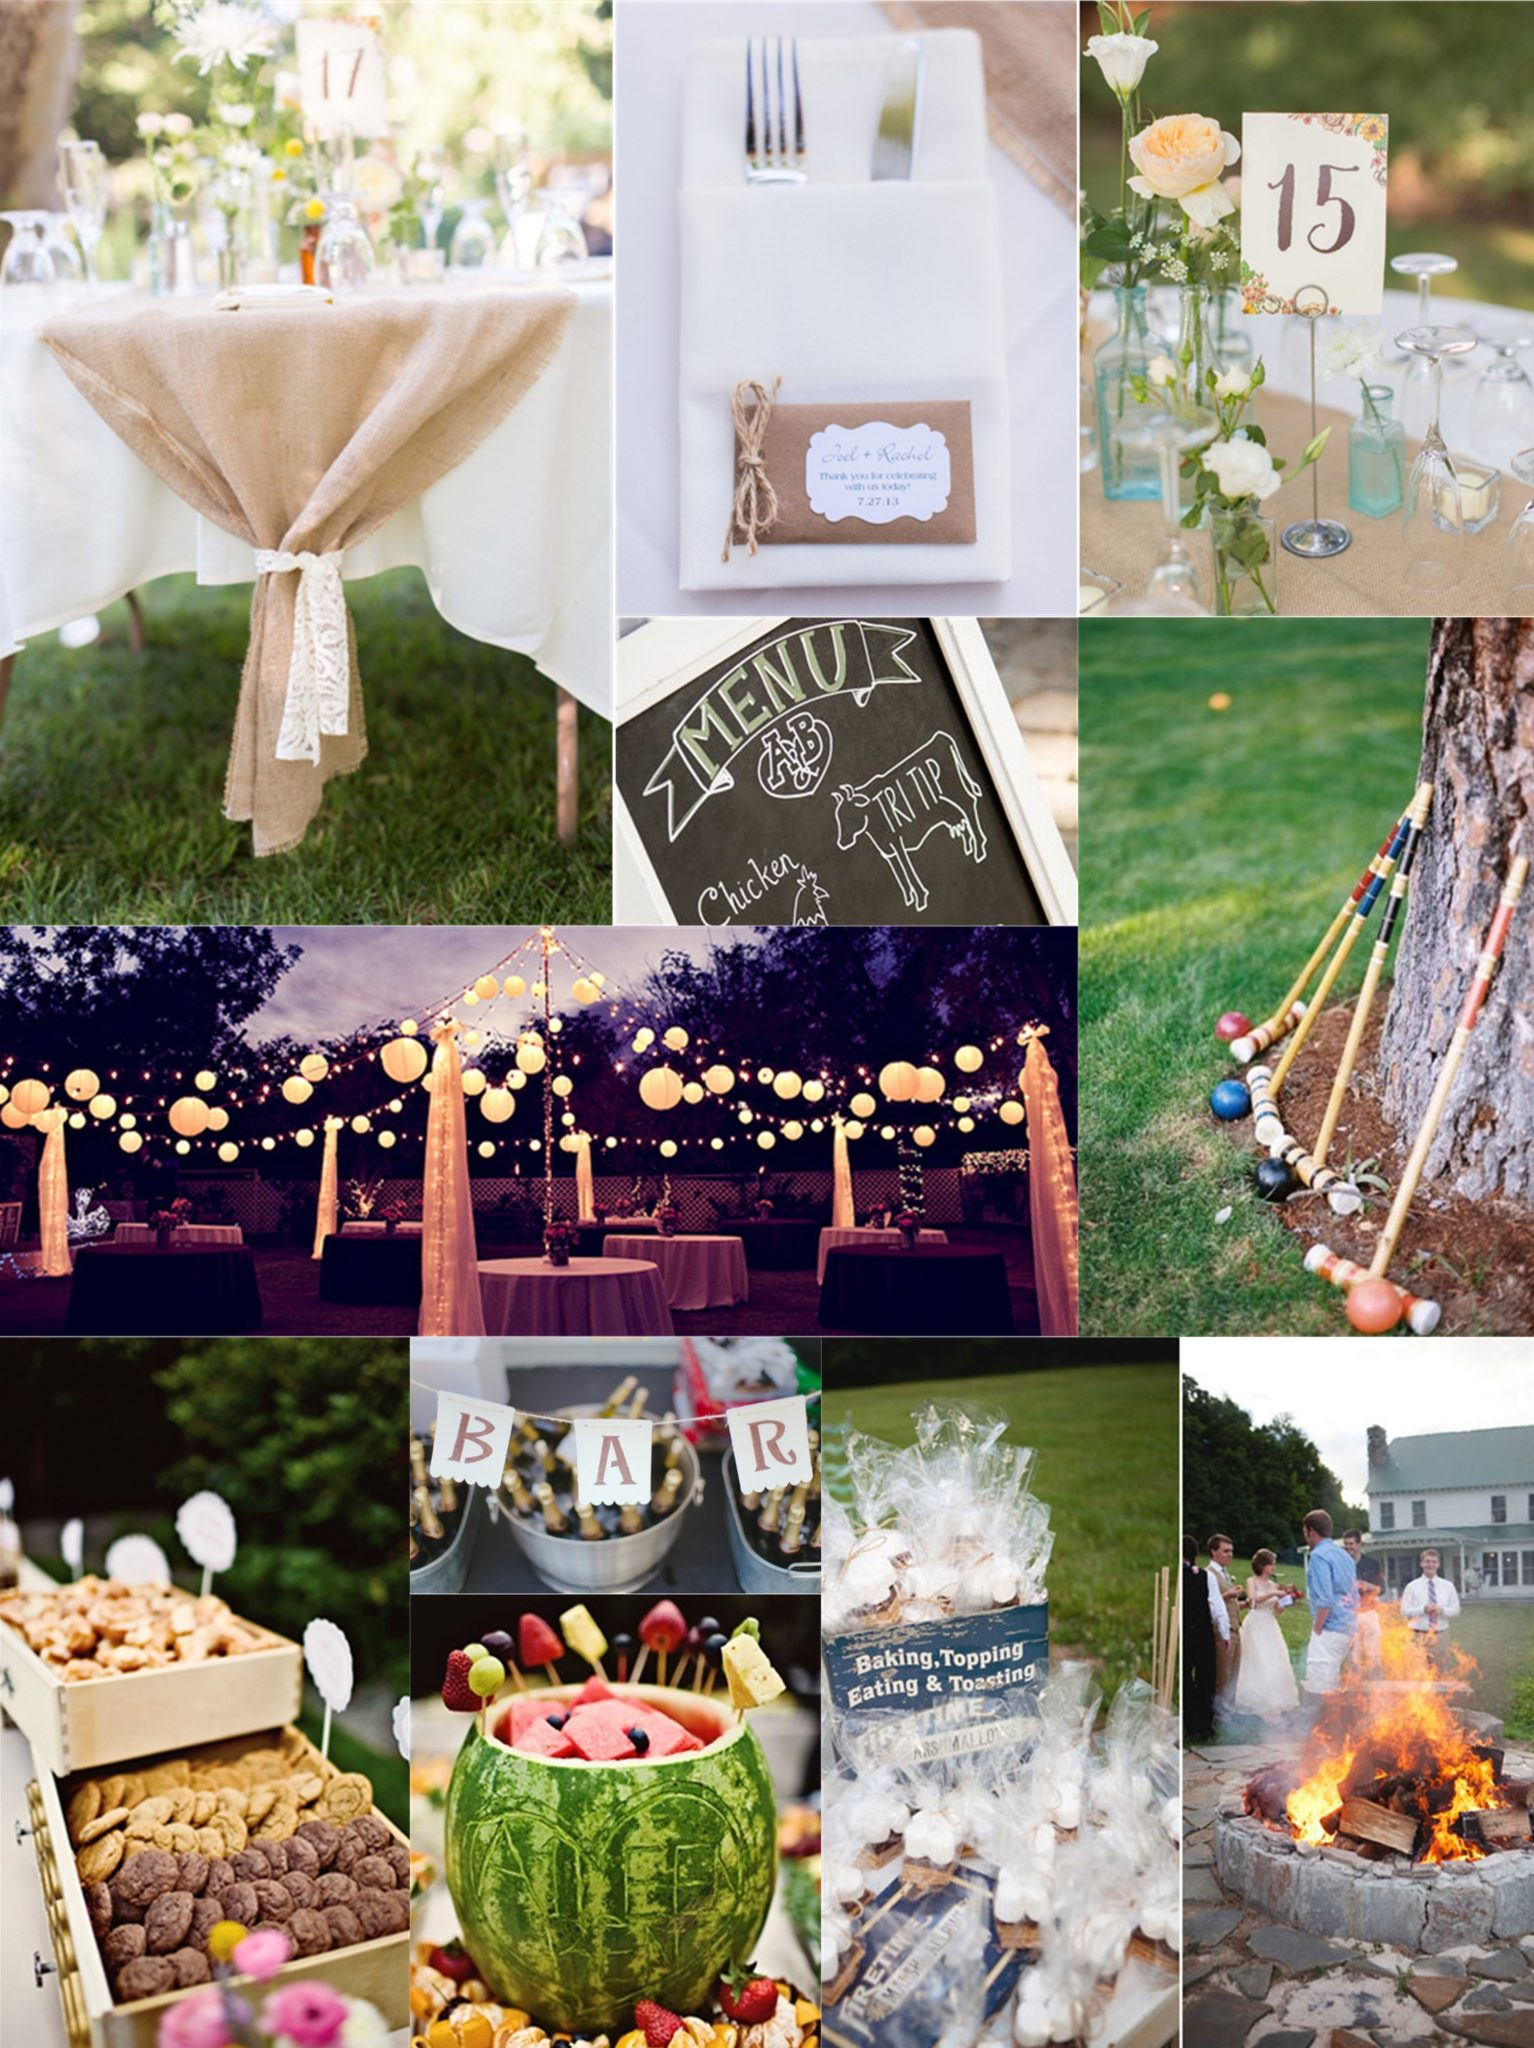 Essential guide to a backyard wedding on a budget for Backyard wedding decoration ideas on a budget